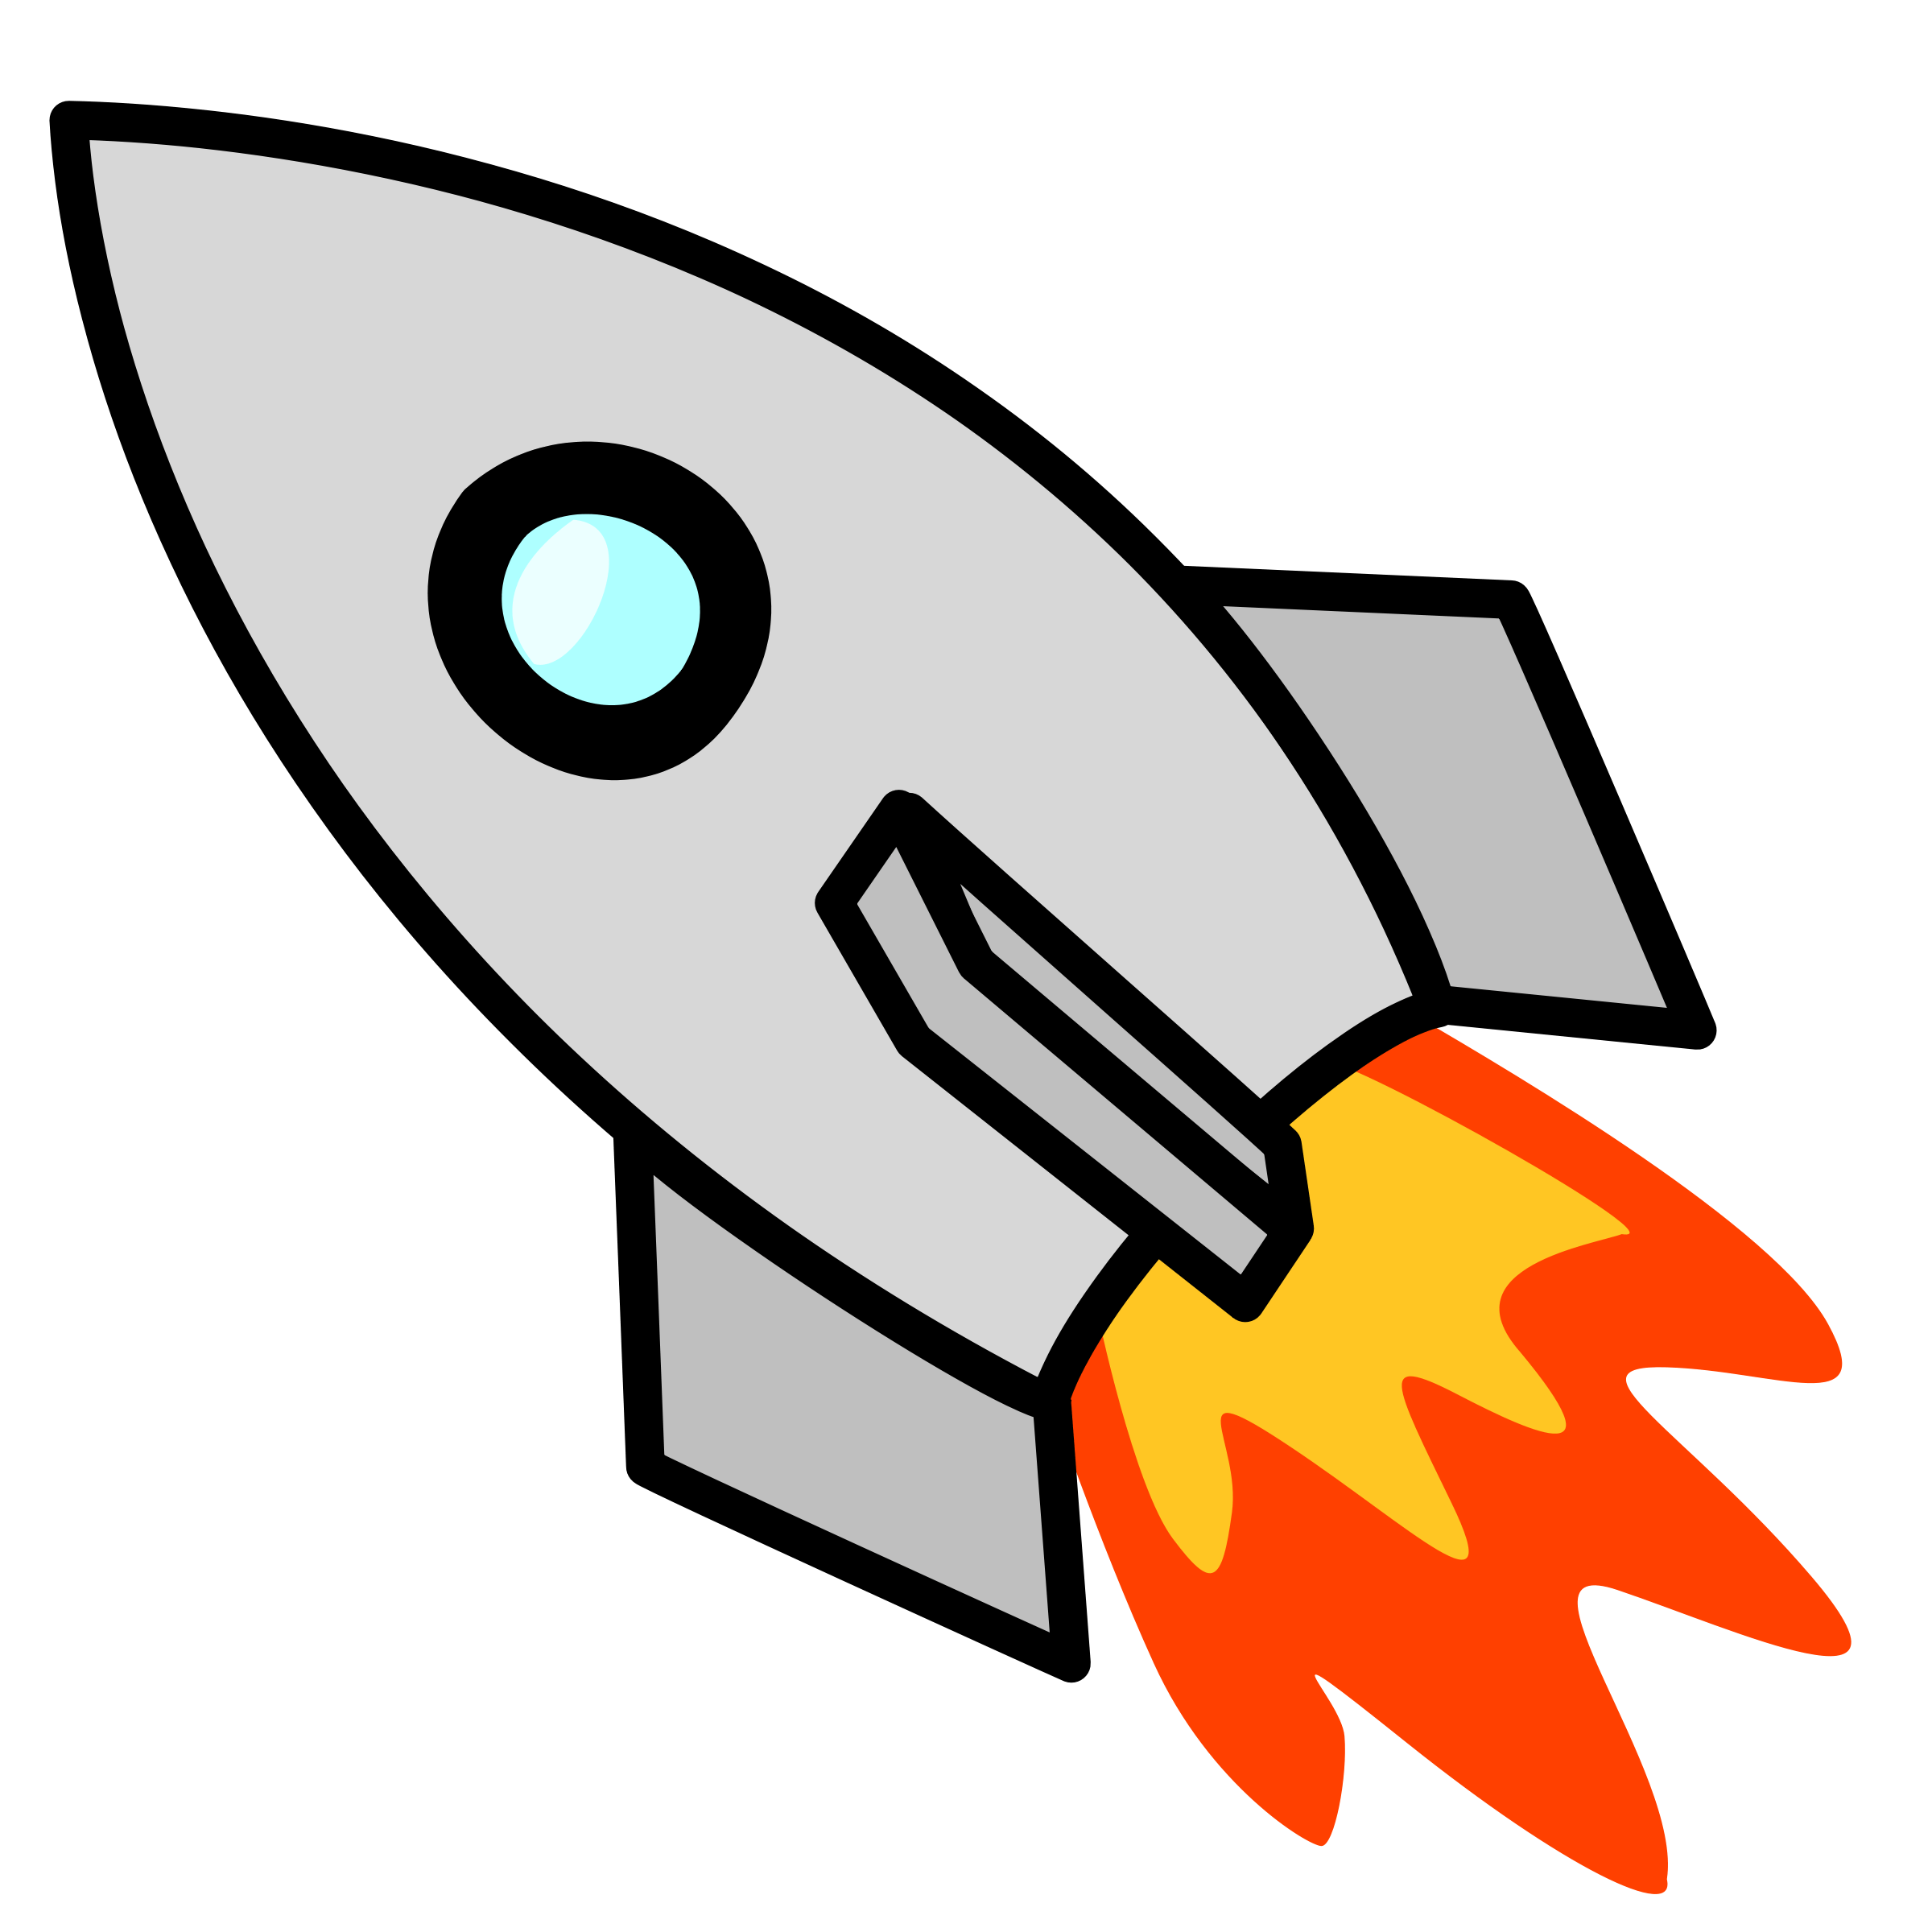 Ship for free images. Clipart rocket printable